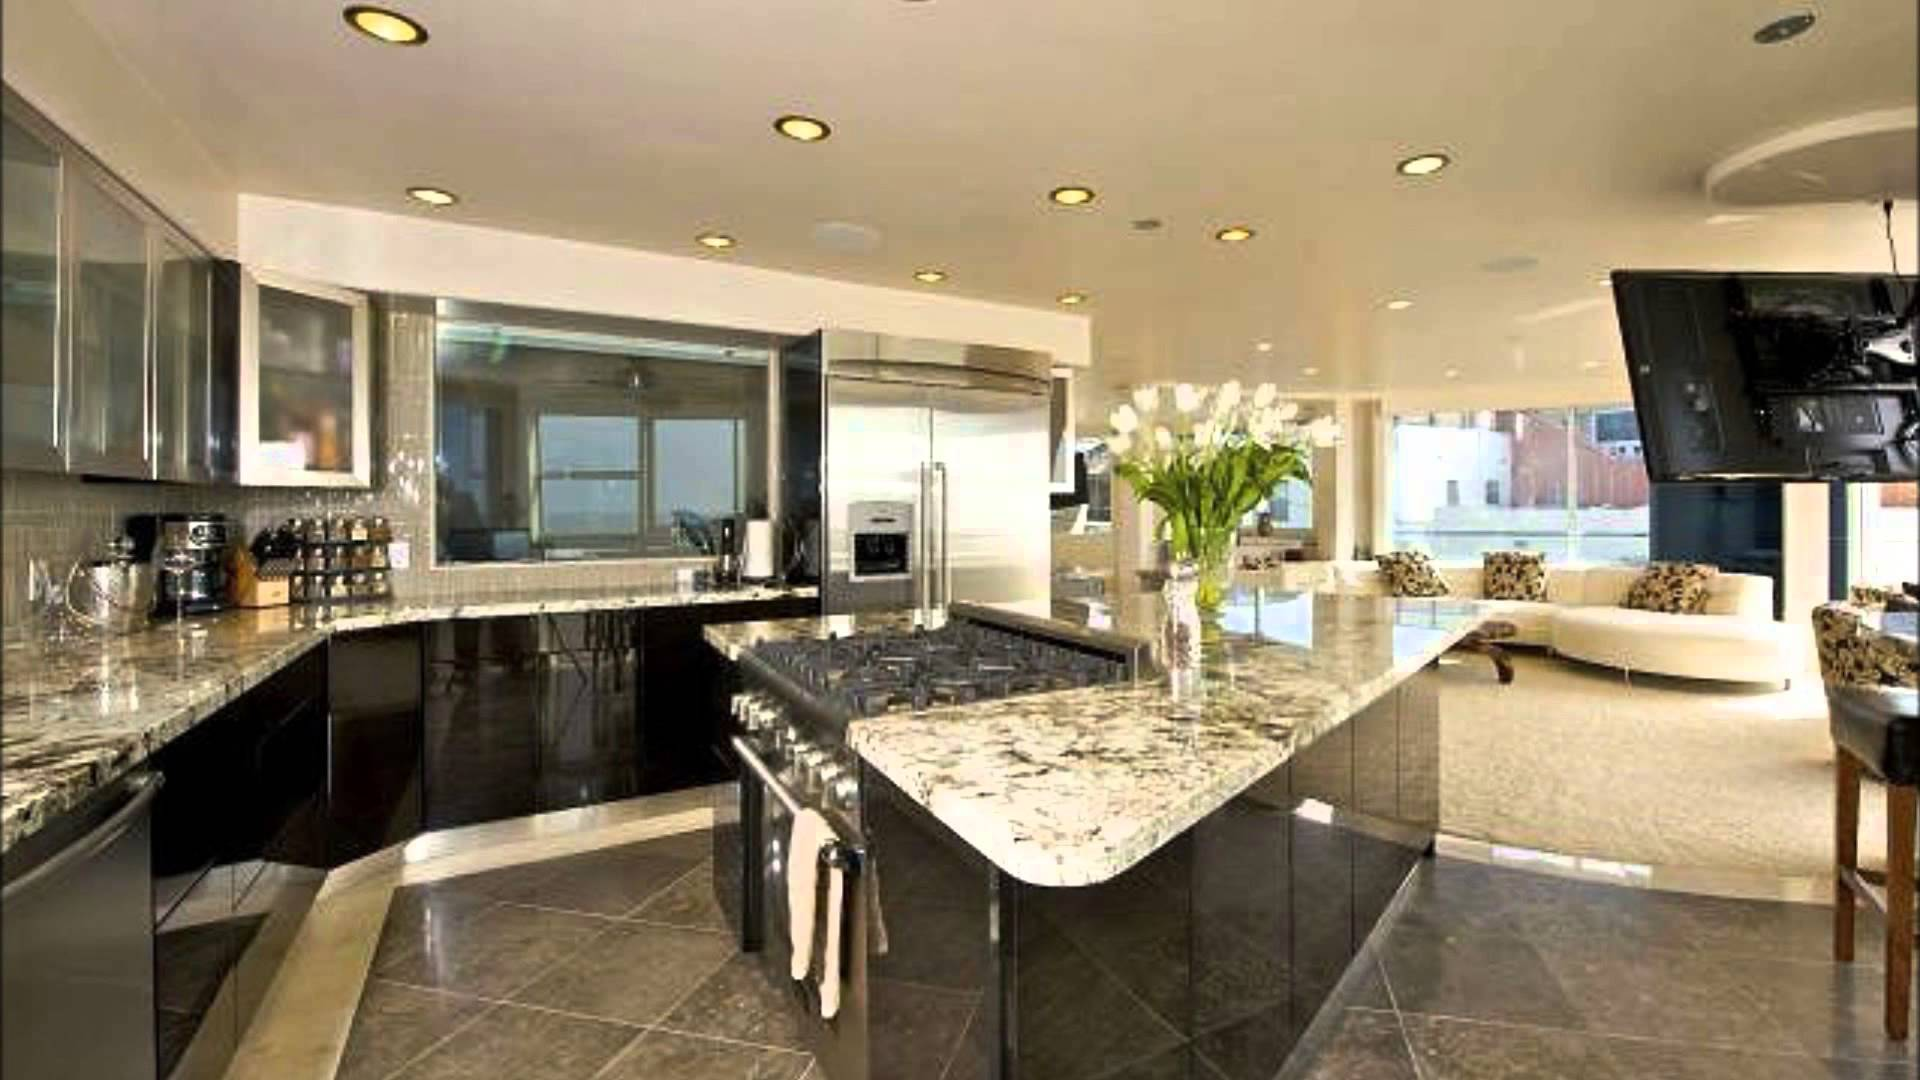 Design your own kitchen ideas with images for Kitchen kitchen design